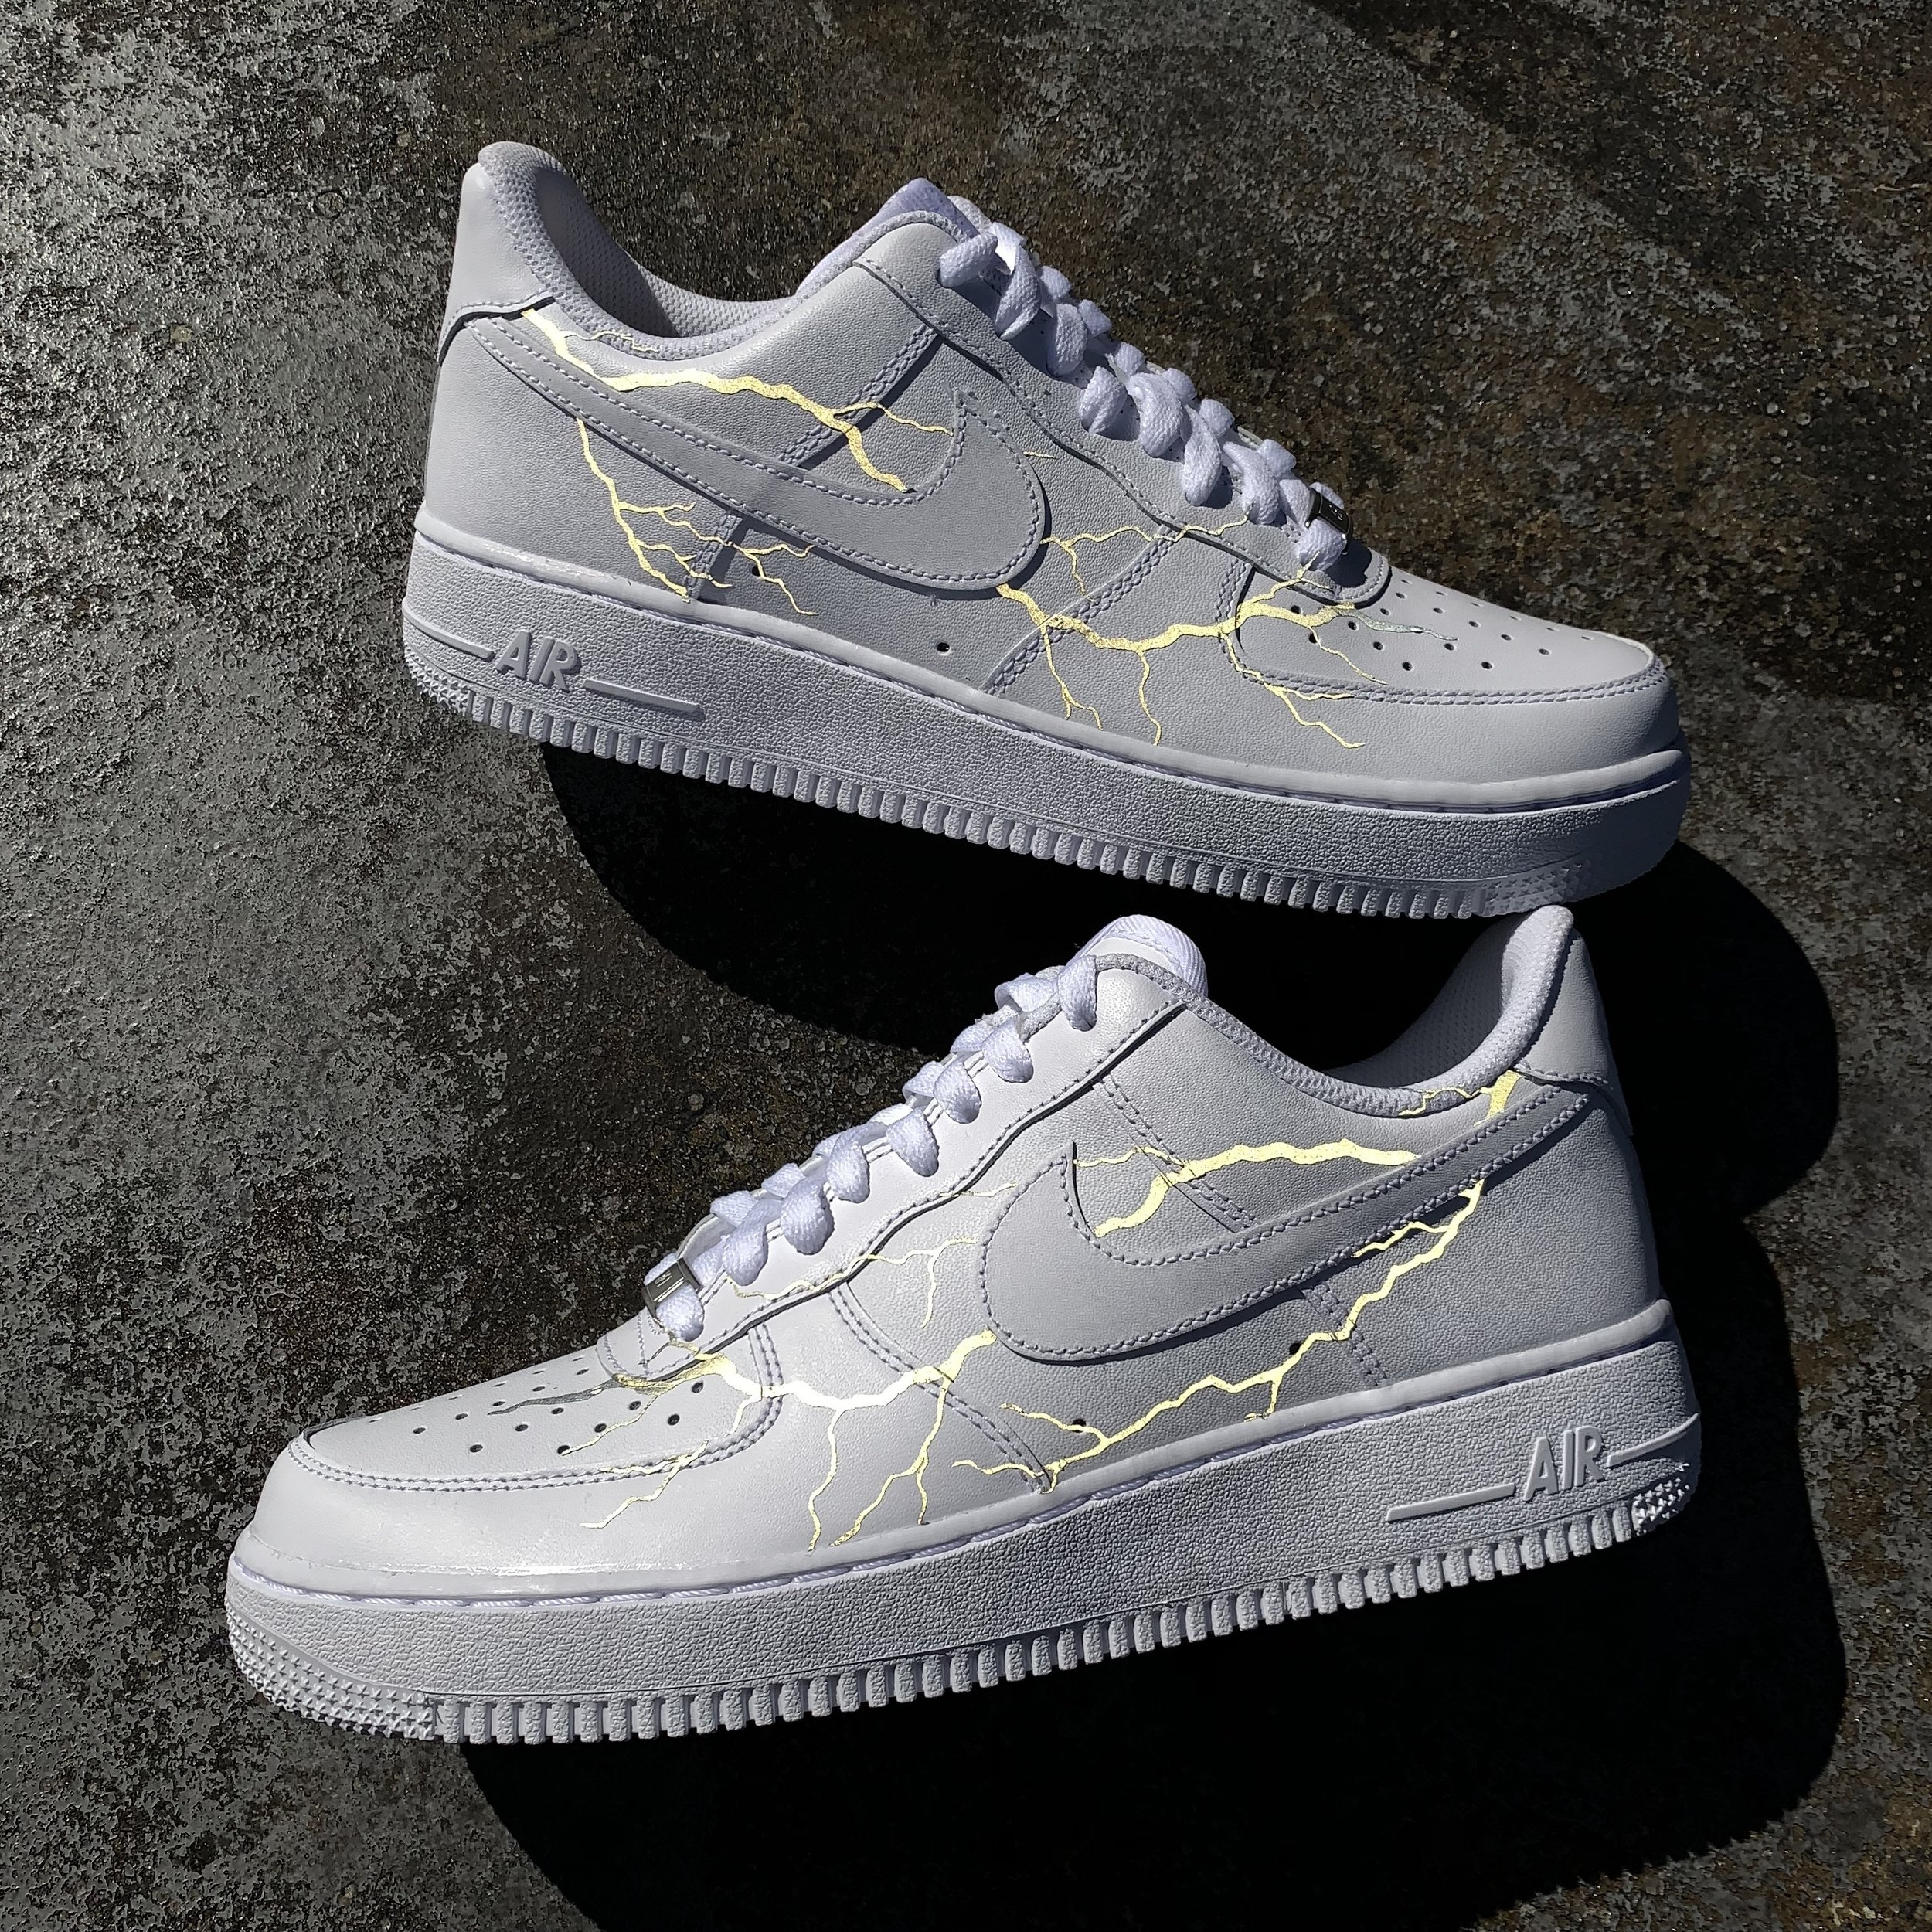 3M Lightning Air Force 1 Custom — vintagewavez